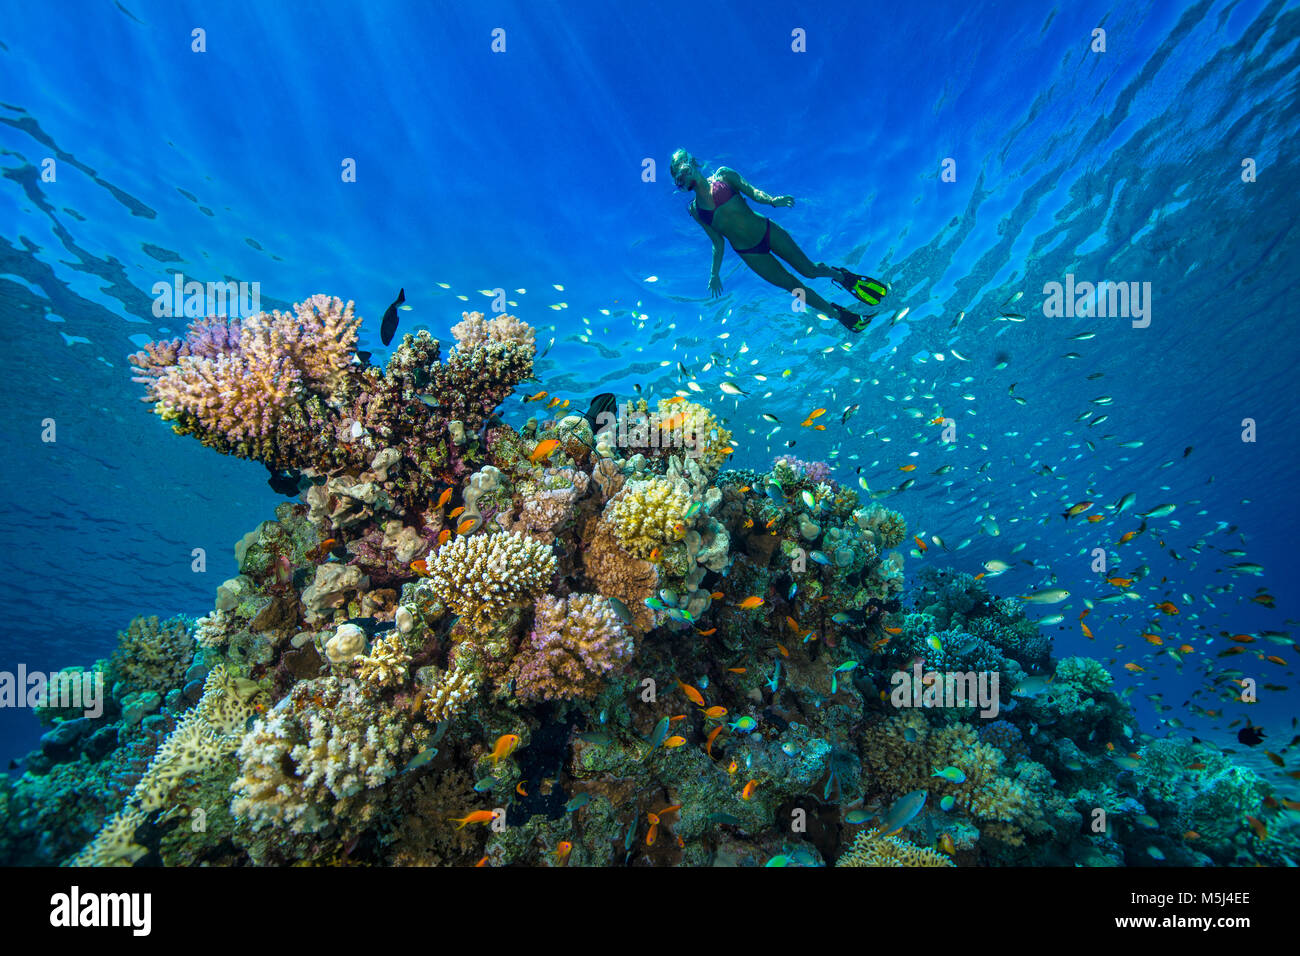 Egypt, Red Sea, Hurghada, young woman snorkeling at coral reef - Stock Image